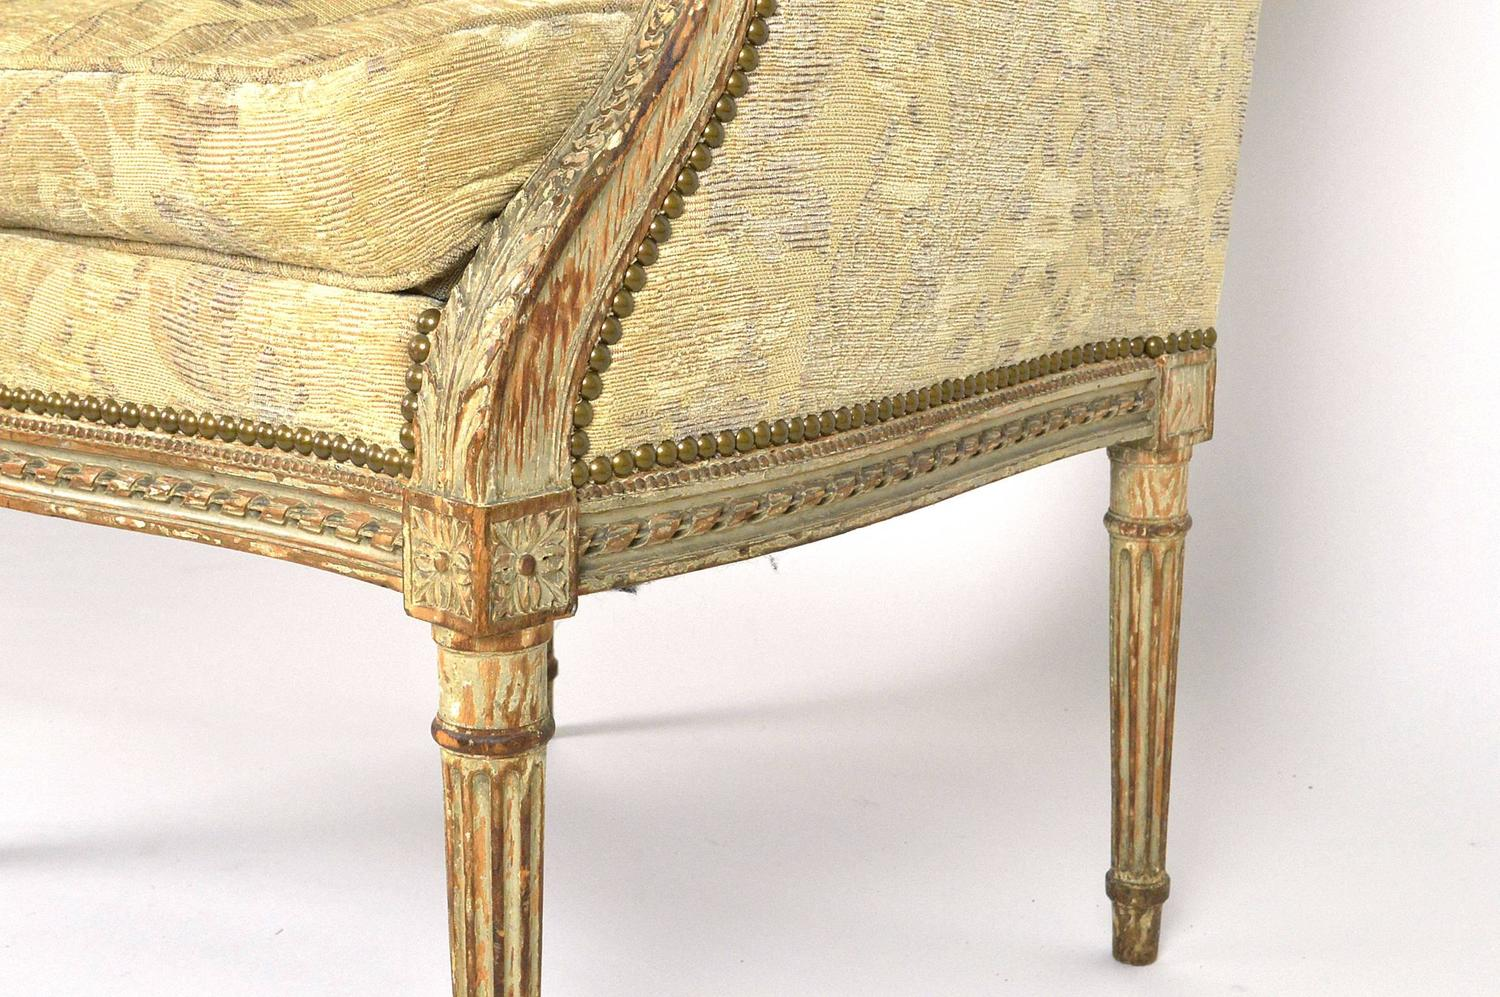 Hooded Chair 19th Century Louis Xvi Style Hooded Butler 39s Chair For